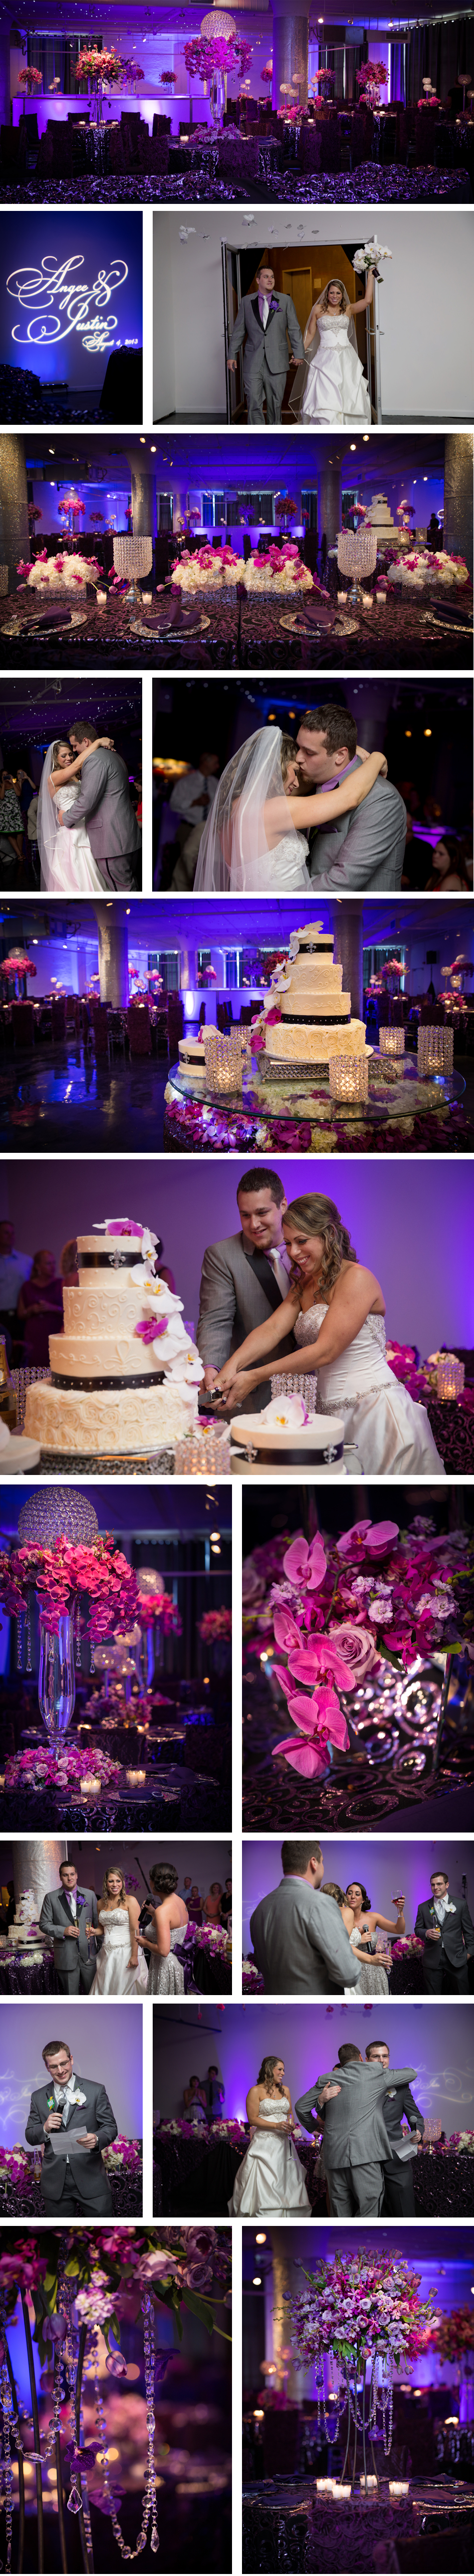 An elegant wedding at The Foundry at Glassworks with Fleur de Lis Events and Decor providing the floral and decor.